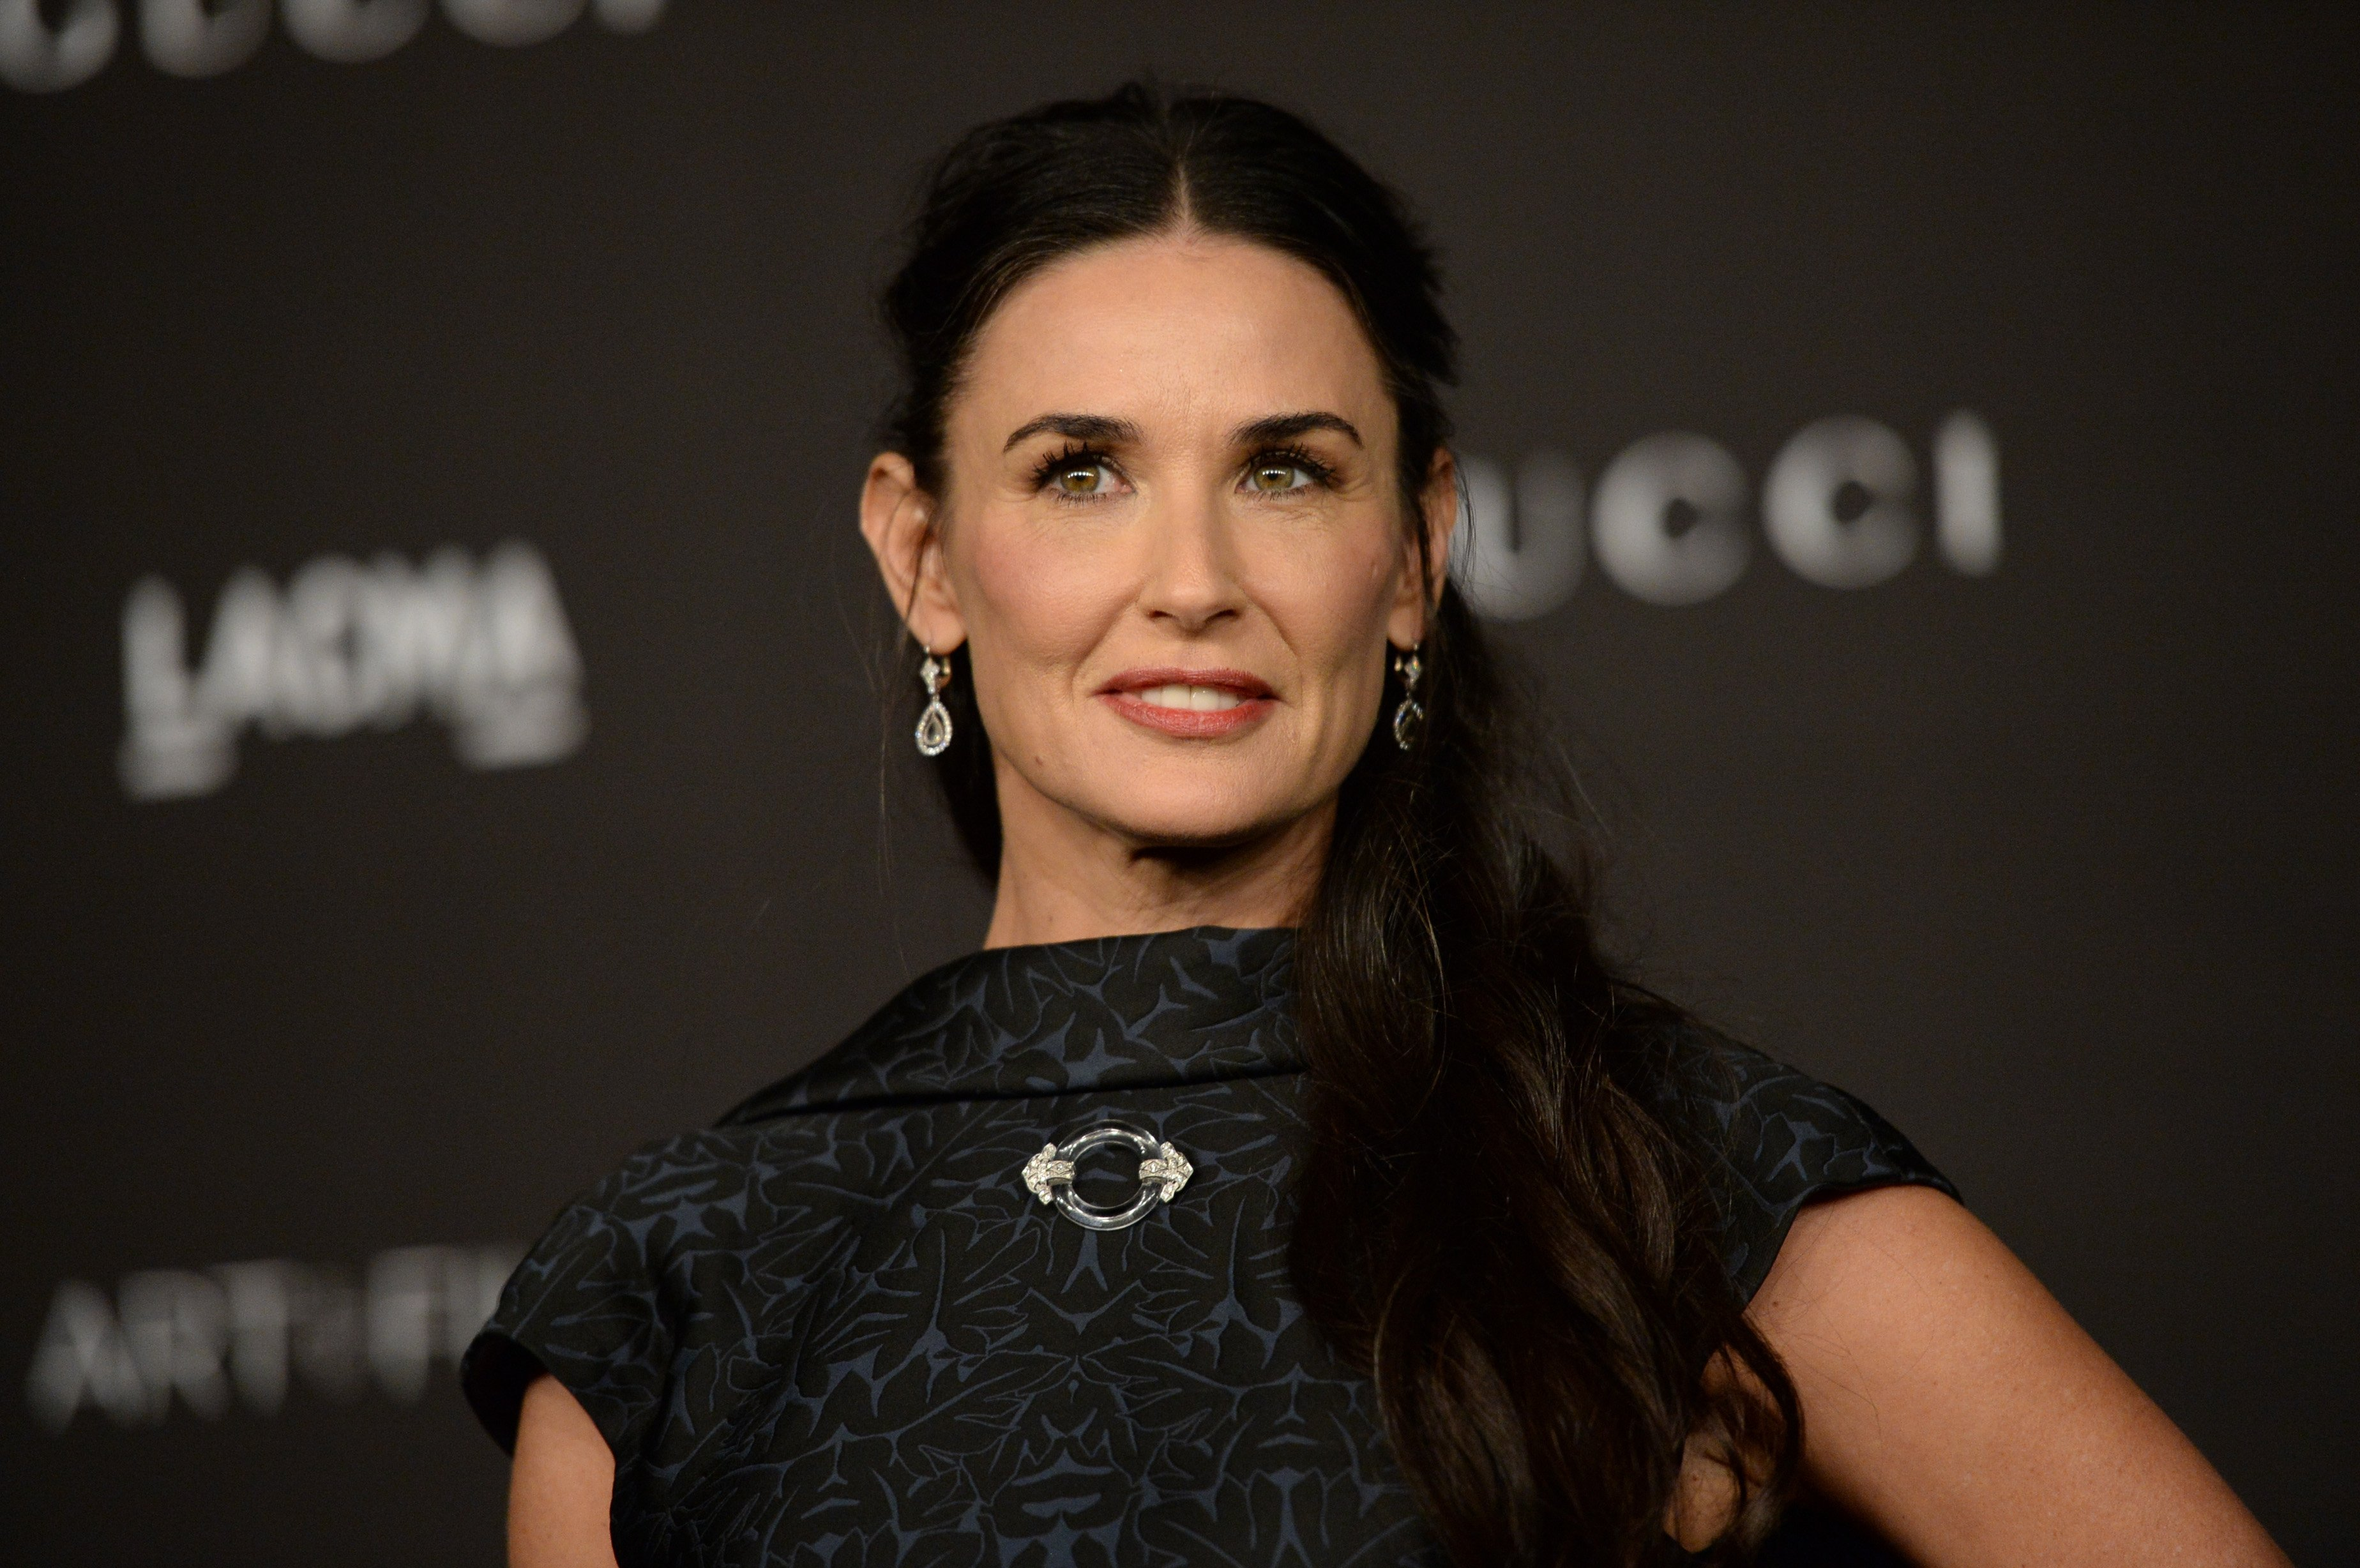 Demi Moore attends the 2014 LACMA Art + Film Gala at LACMA on November 1, 2014 in Los Angeles, California   Photo: Getty Images